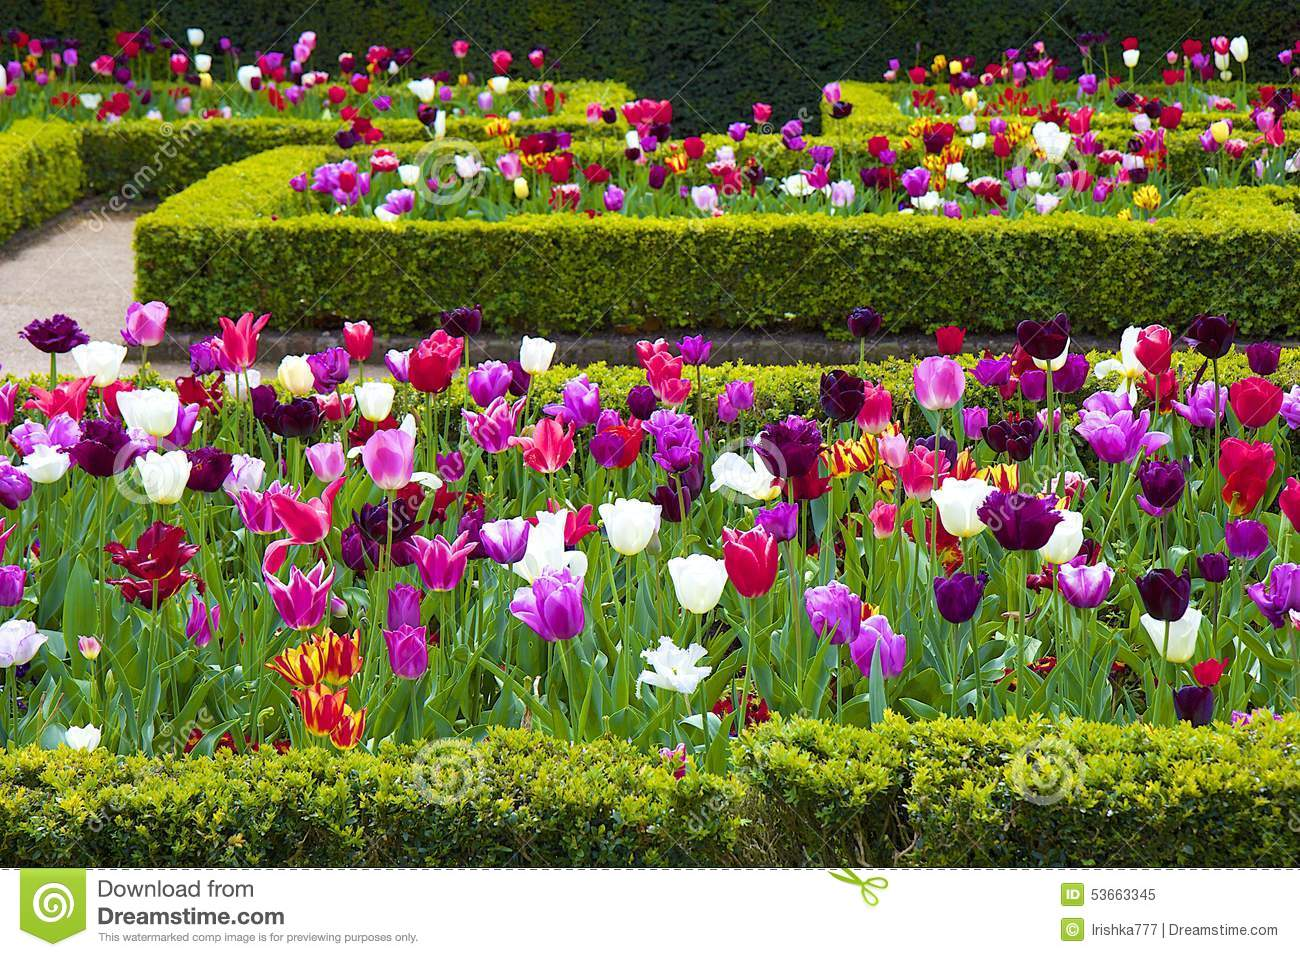 Tulips in holland park london stock image image of grass europe spring flowers blossom in holland park london mightylinksfo